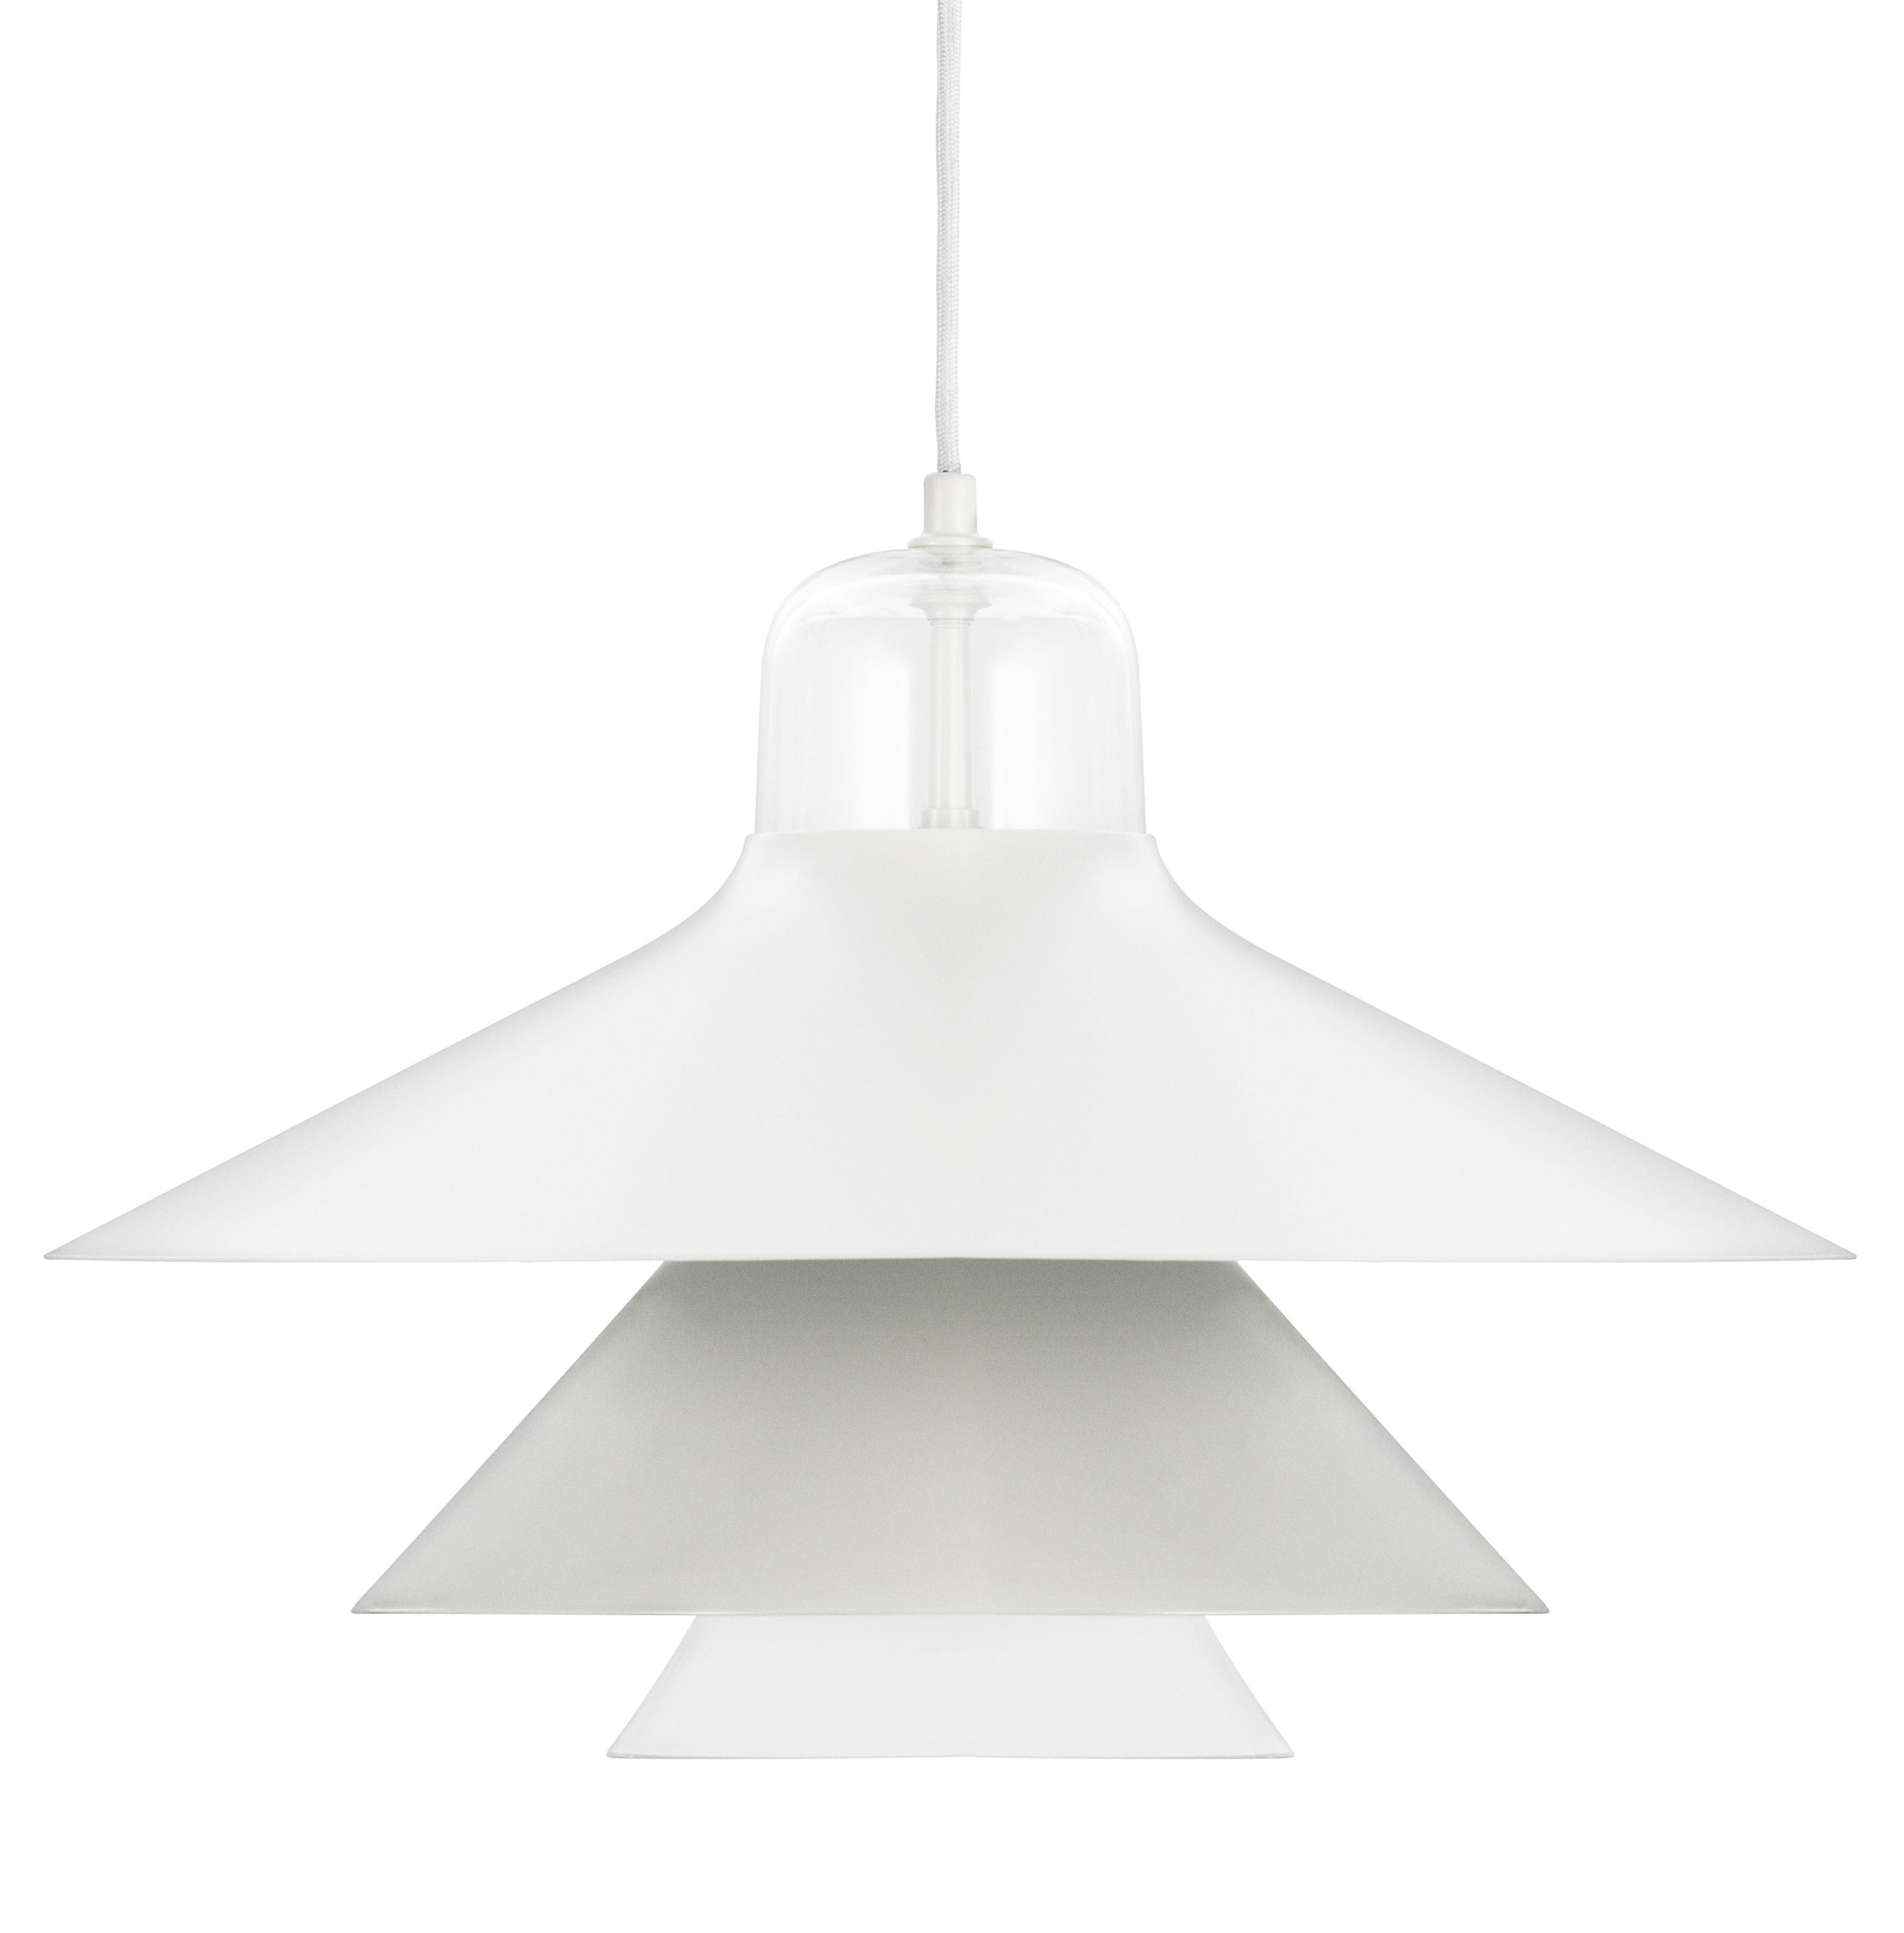 Lighting - Pendant Lighting - Ikono Large Pendant by Normann Copenhagen - Grey - Glass, Lacquered steel